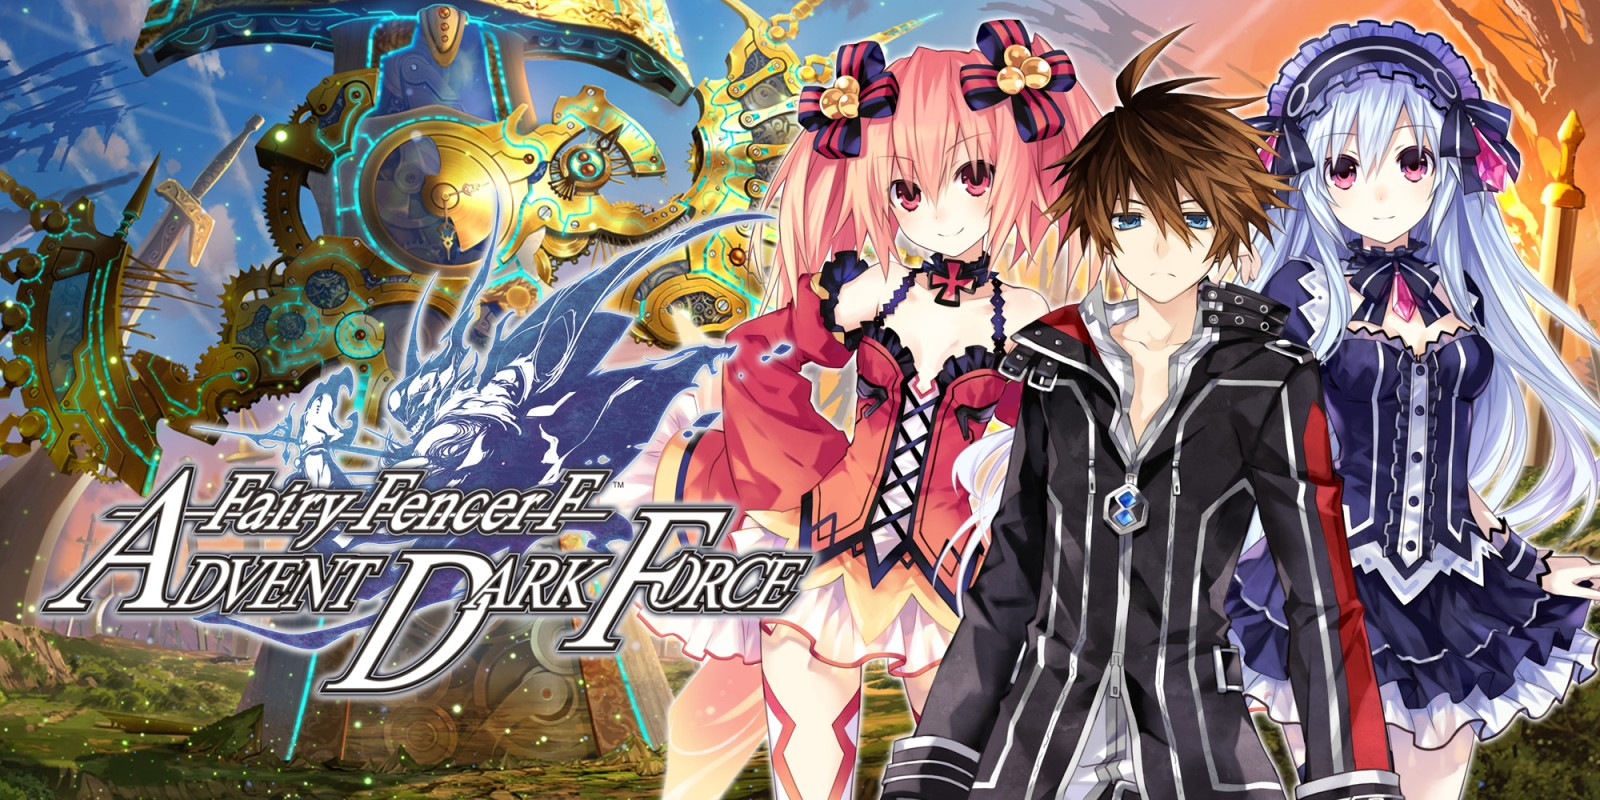 Fairy Fencer : Advent Dark >Force